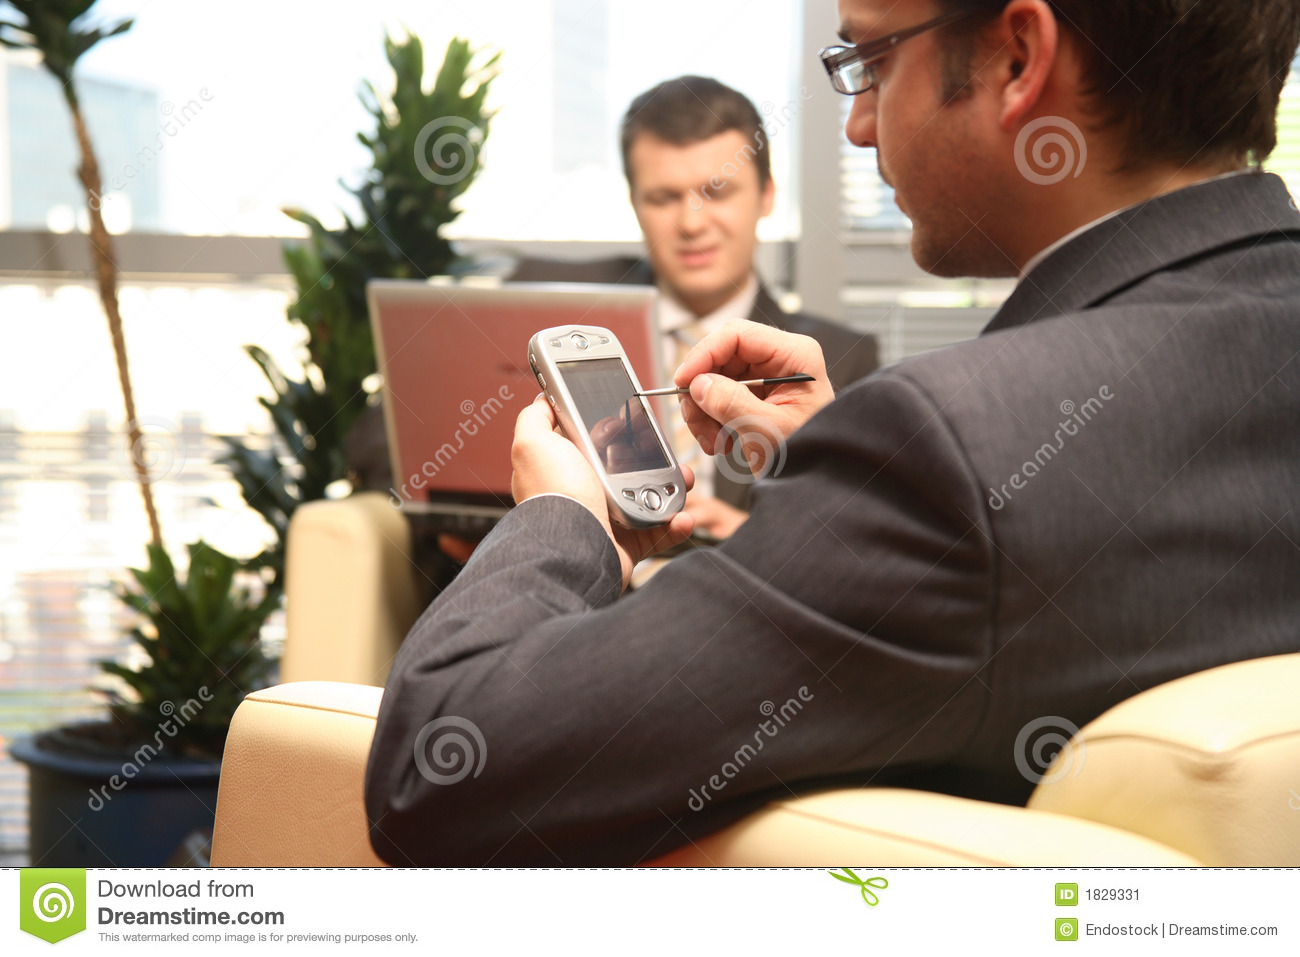 Two business men working with laptop & palmtop in the office environment.